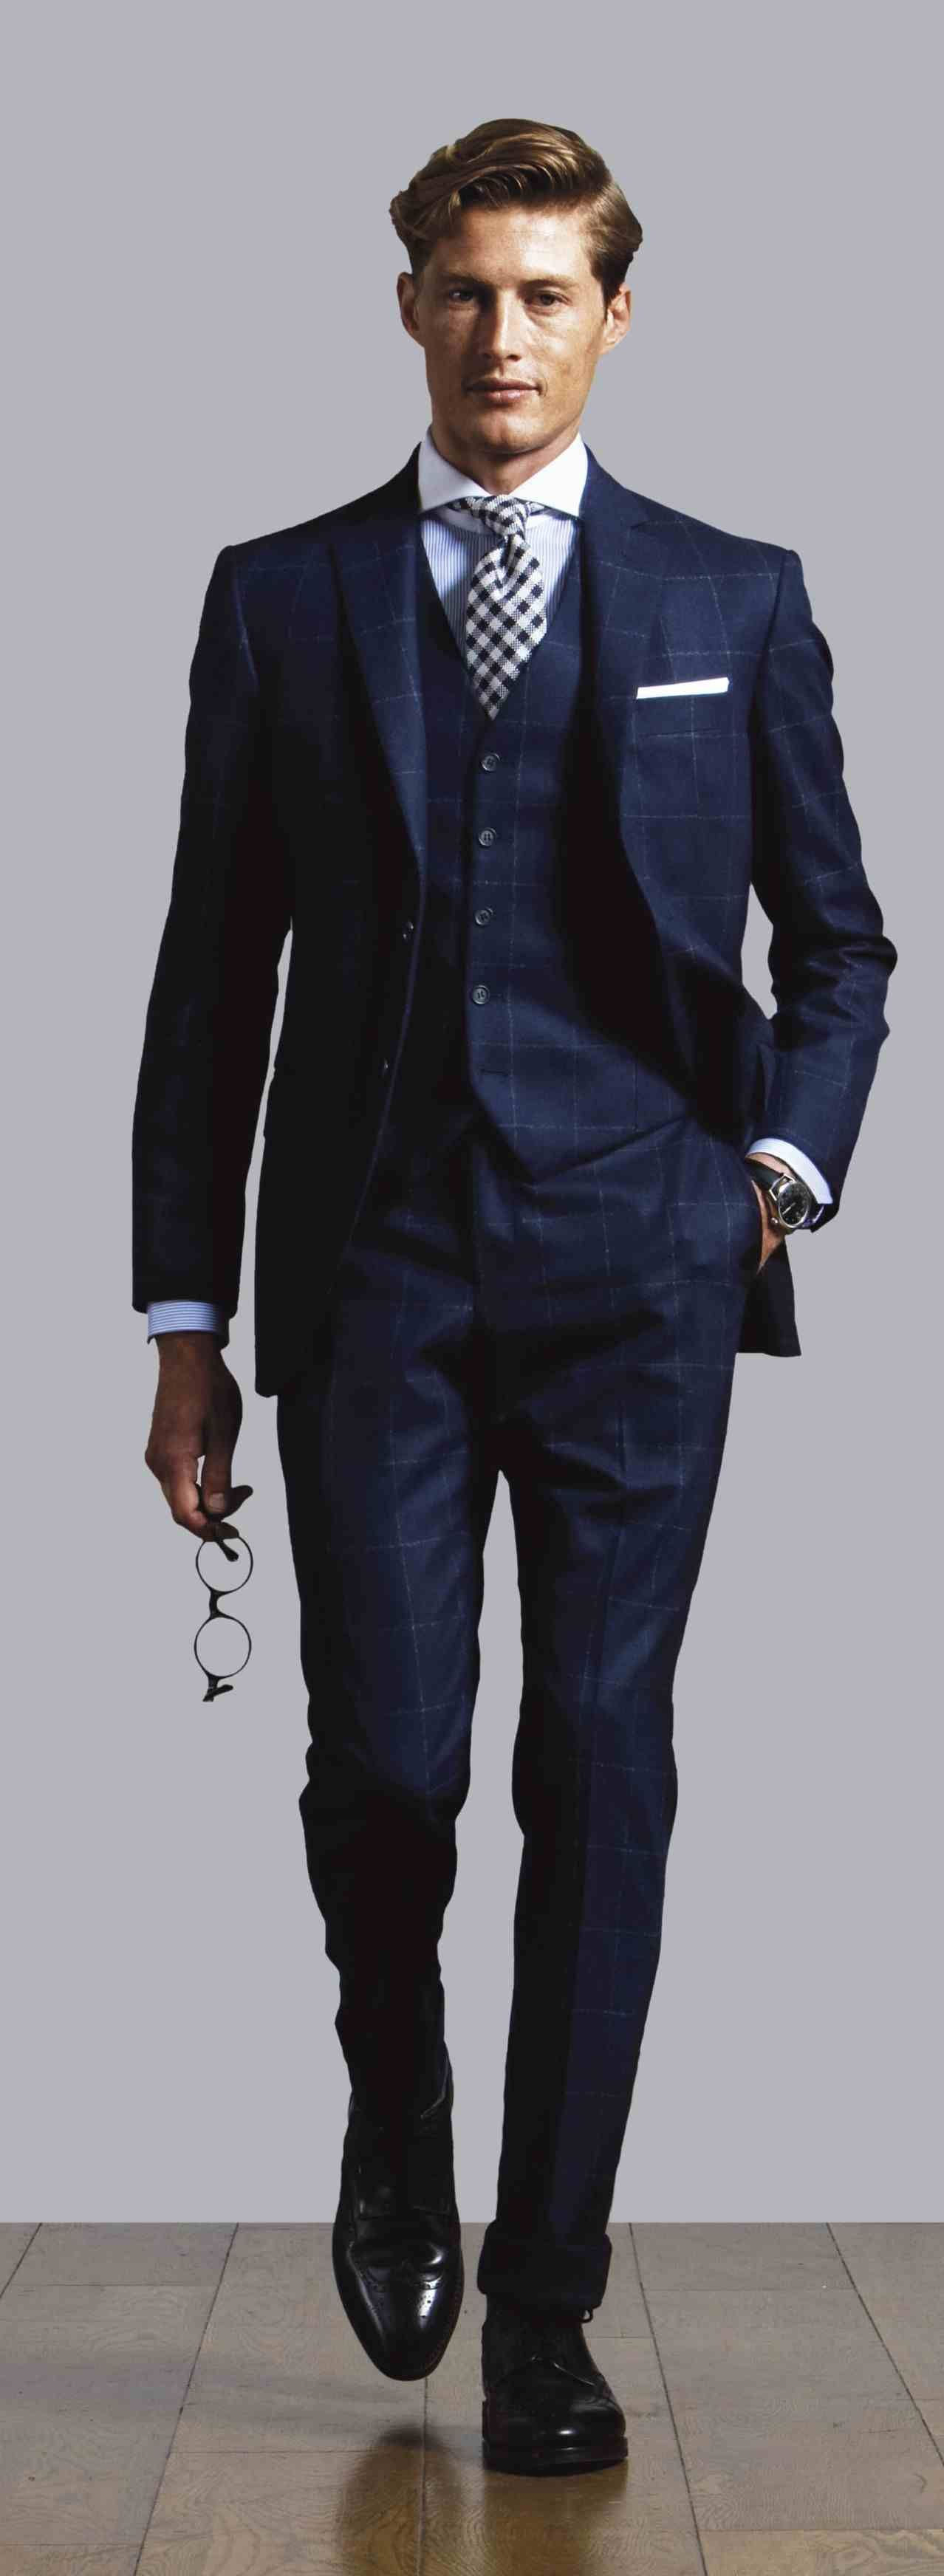 weddings #Groom's suit ideas -three piece navy suit… | Men's ...